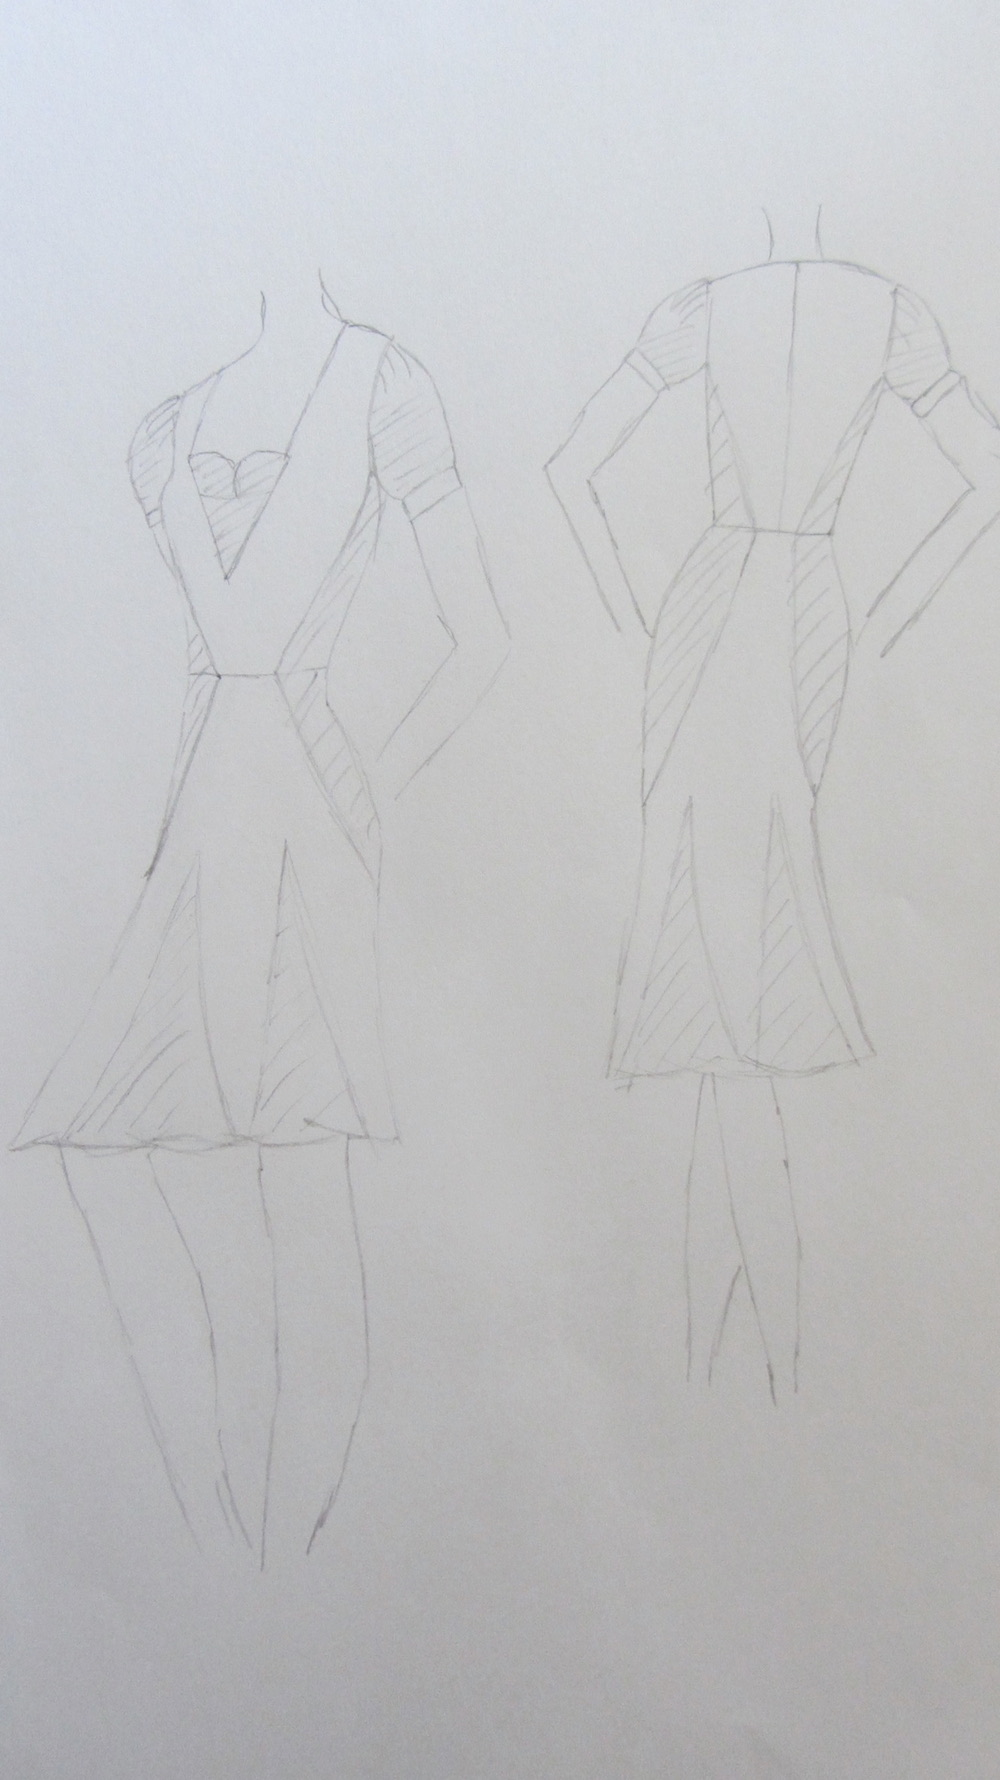 Summer cocktail dress inspiration drawing.jpeg